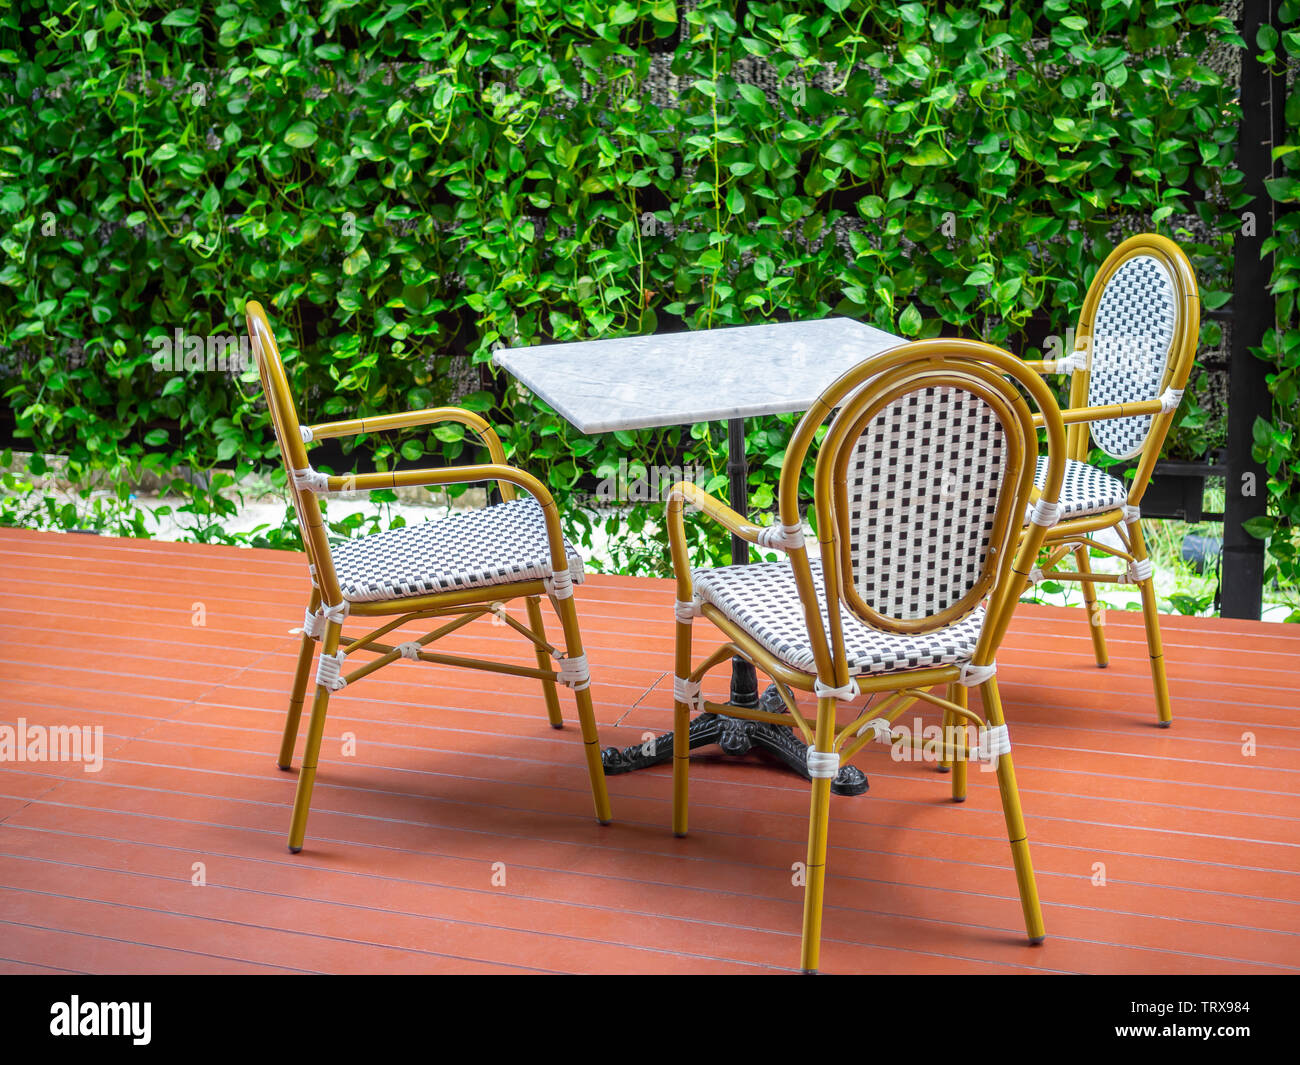 Three Wooden White Vintage Chairs With White Marble Table On Red Floor On Green Ivy Plant Background Dining Table Set In The Garden Stock Photo Alamy